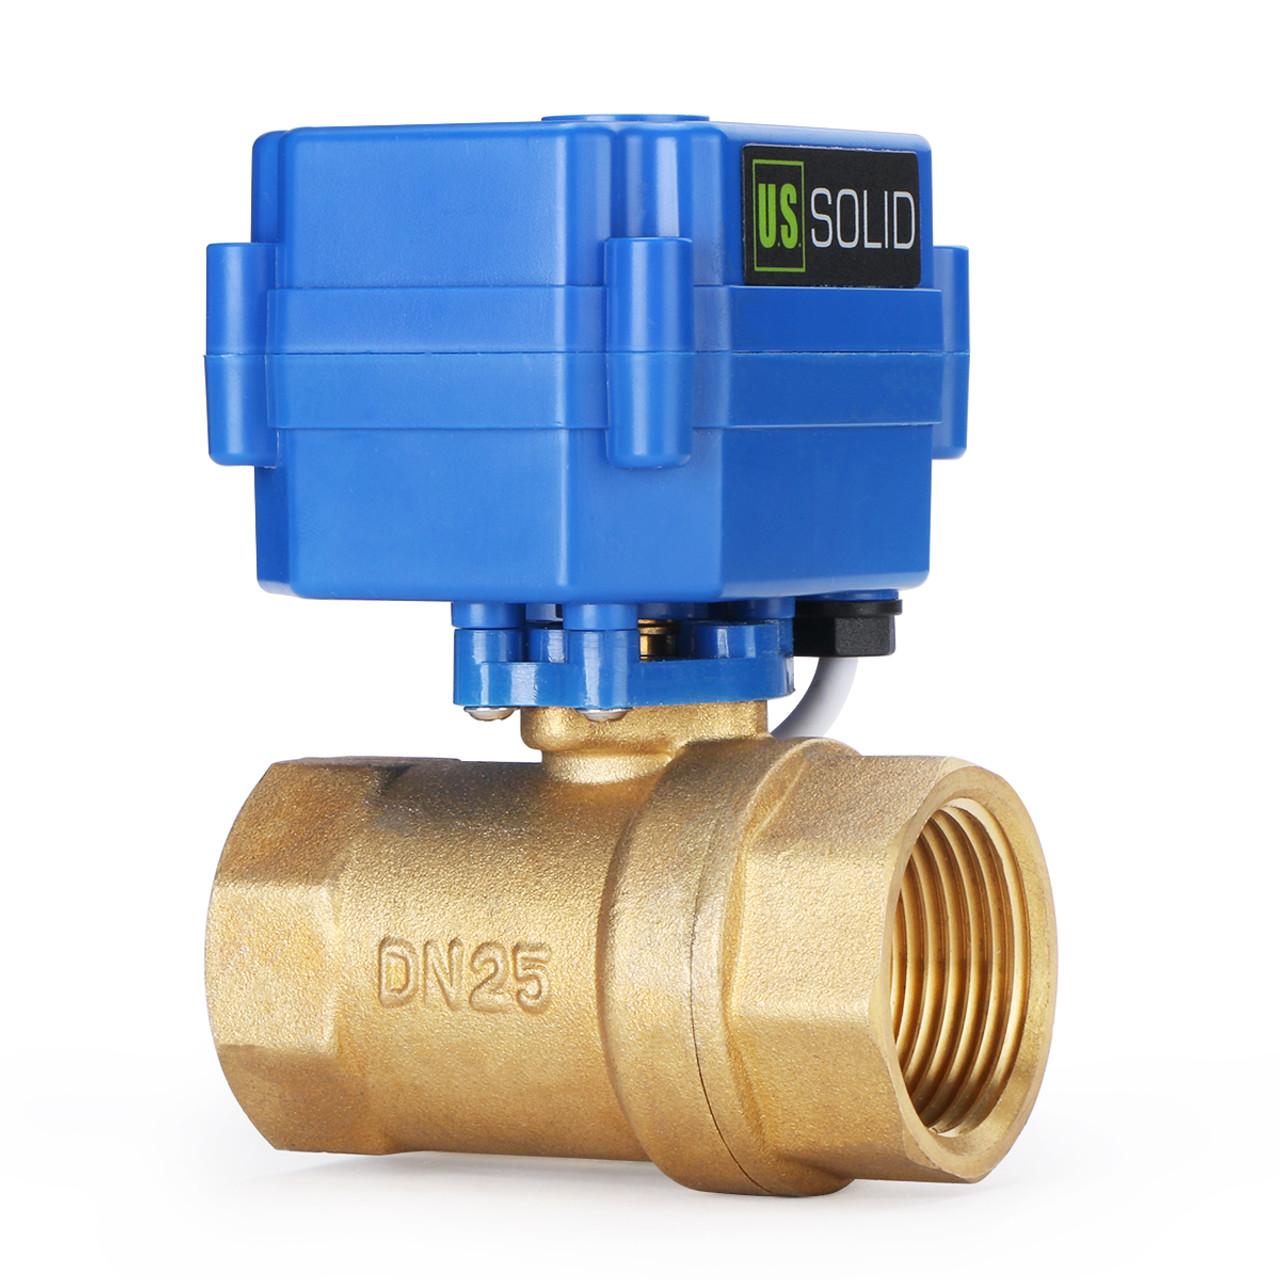 Indicate Open or Closed Position 9-24V DC 5 Wire Setup Motorized Ball Valve- 1//2 Brass Electrical Ball Valve with Full Port Solid can be used with Indicator Lights, by U.S